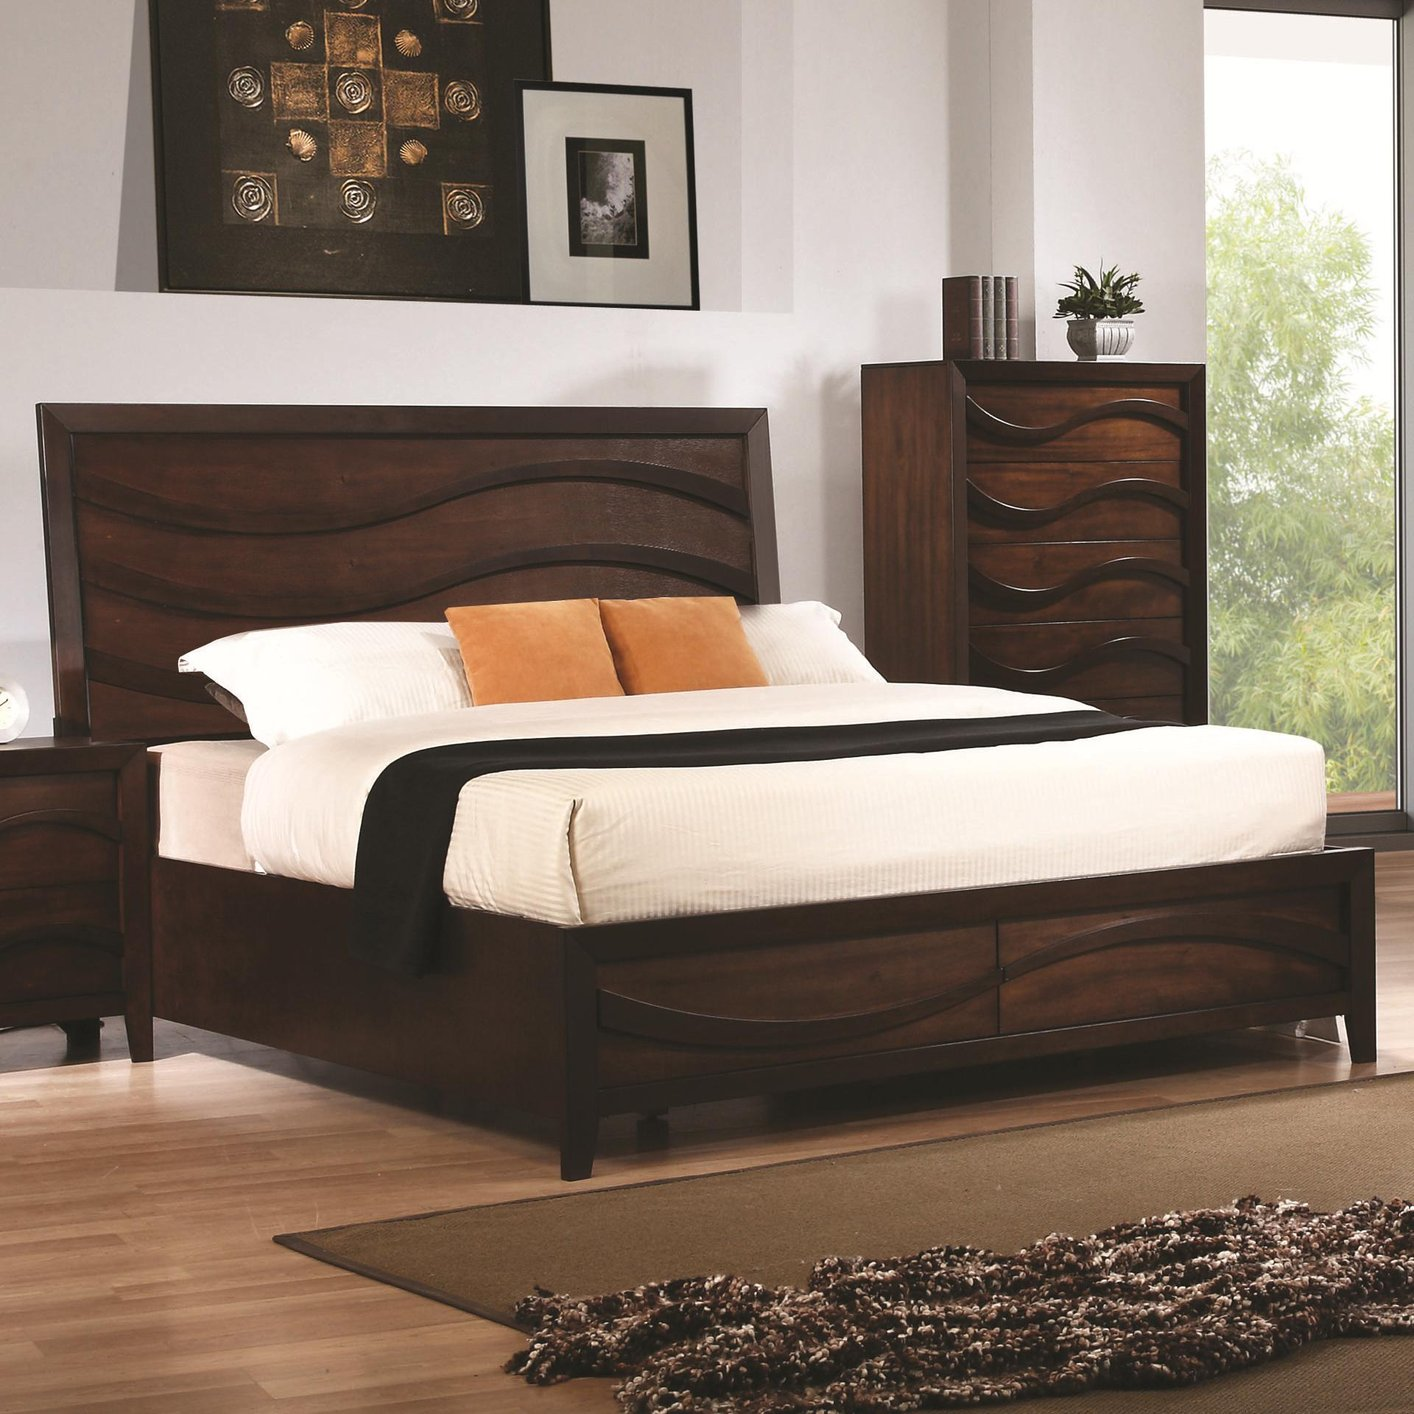 Coaster 203101kw brown california king size wood bed California king beds